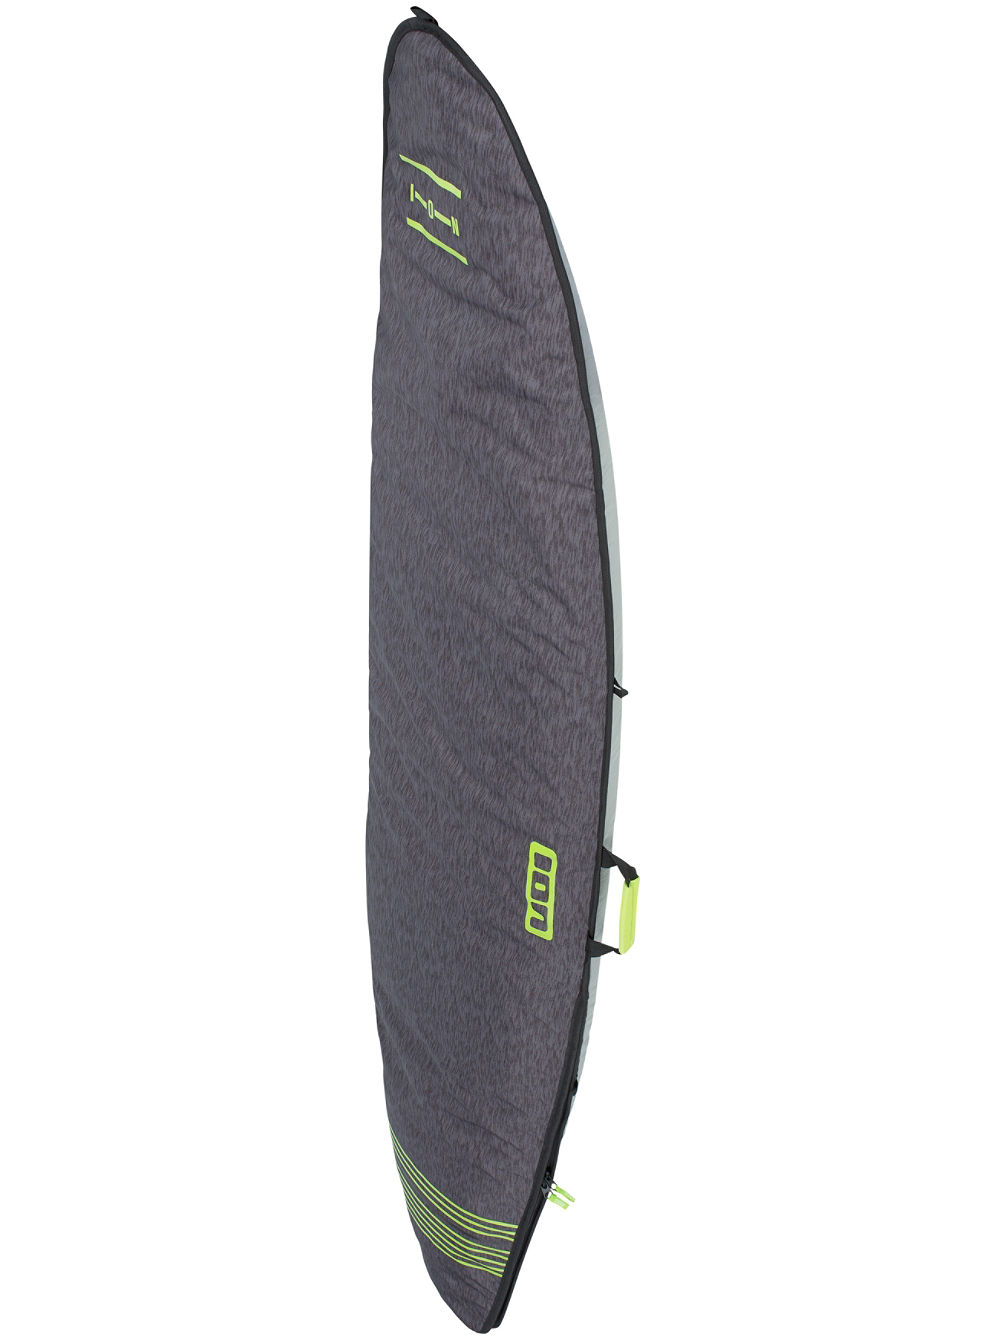 Sup Core 9.5x32 SUP Boardbag